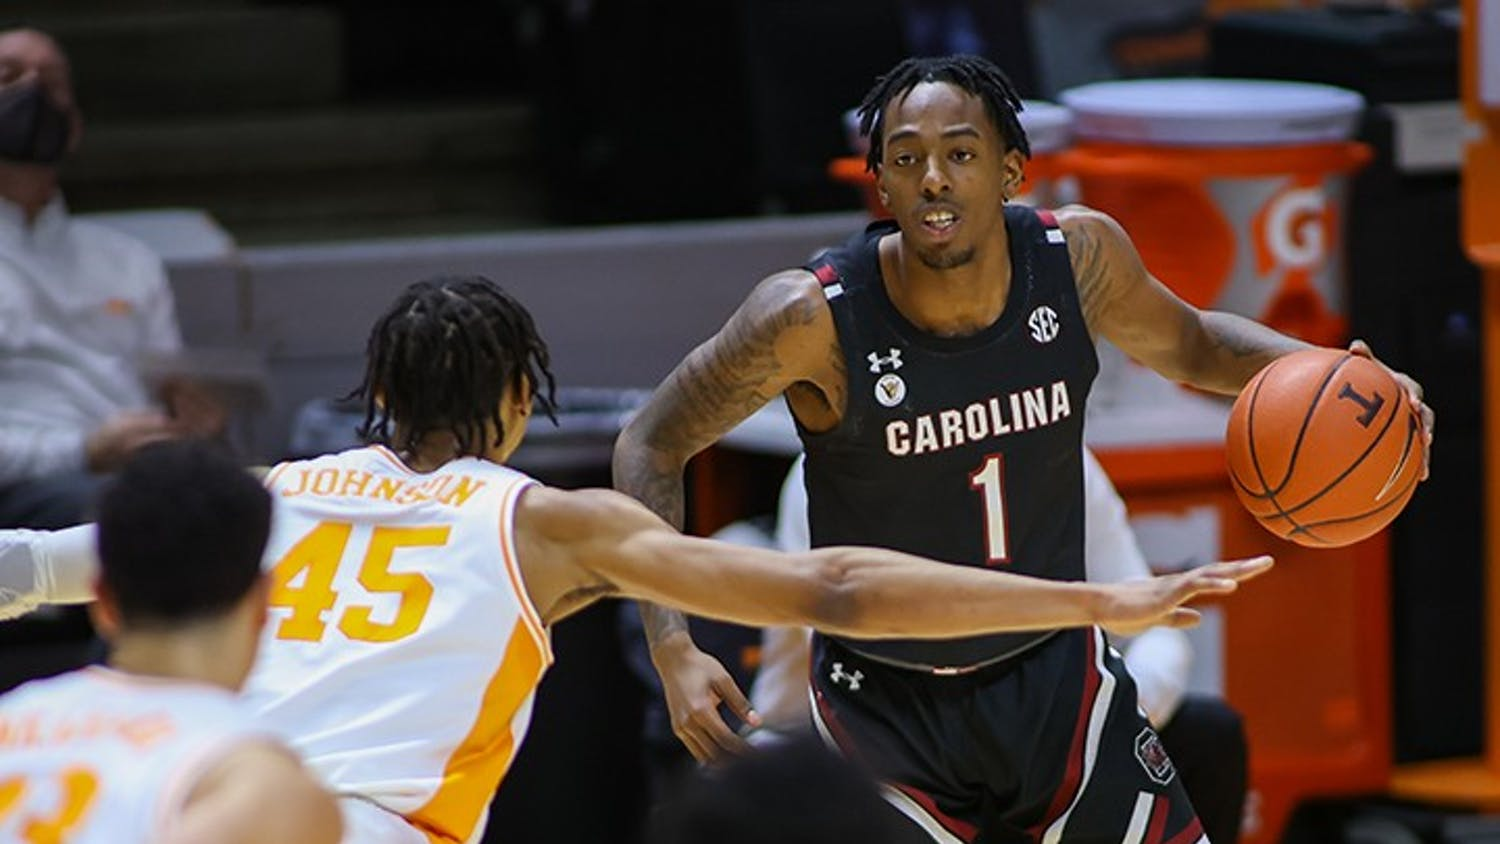 Red shirt sophomore guard TJ Moss dribbles the ball while looking at a Tennessee player. South Carolina lost 93-73.